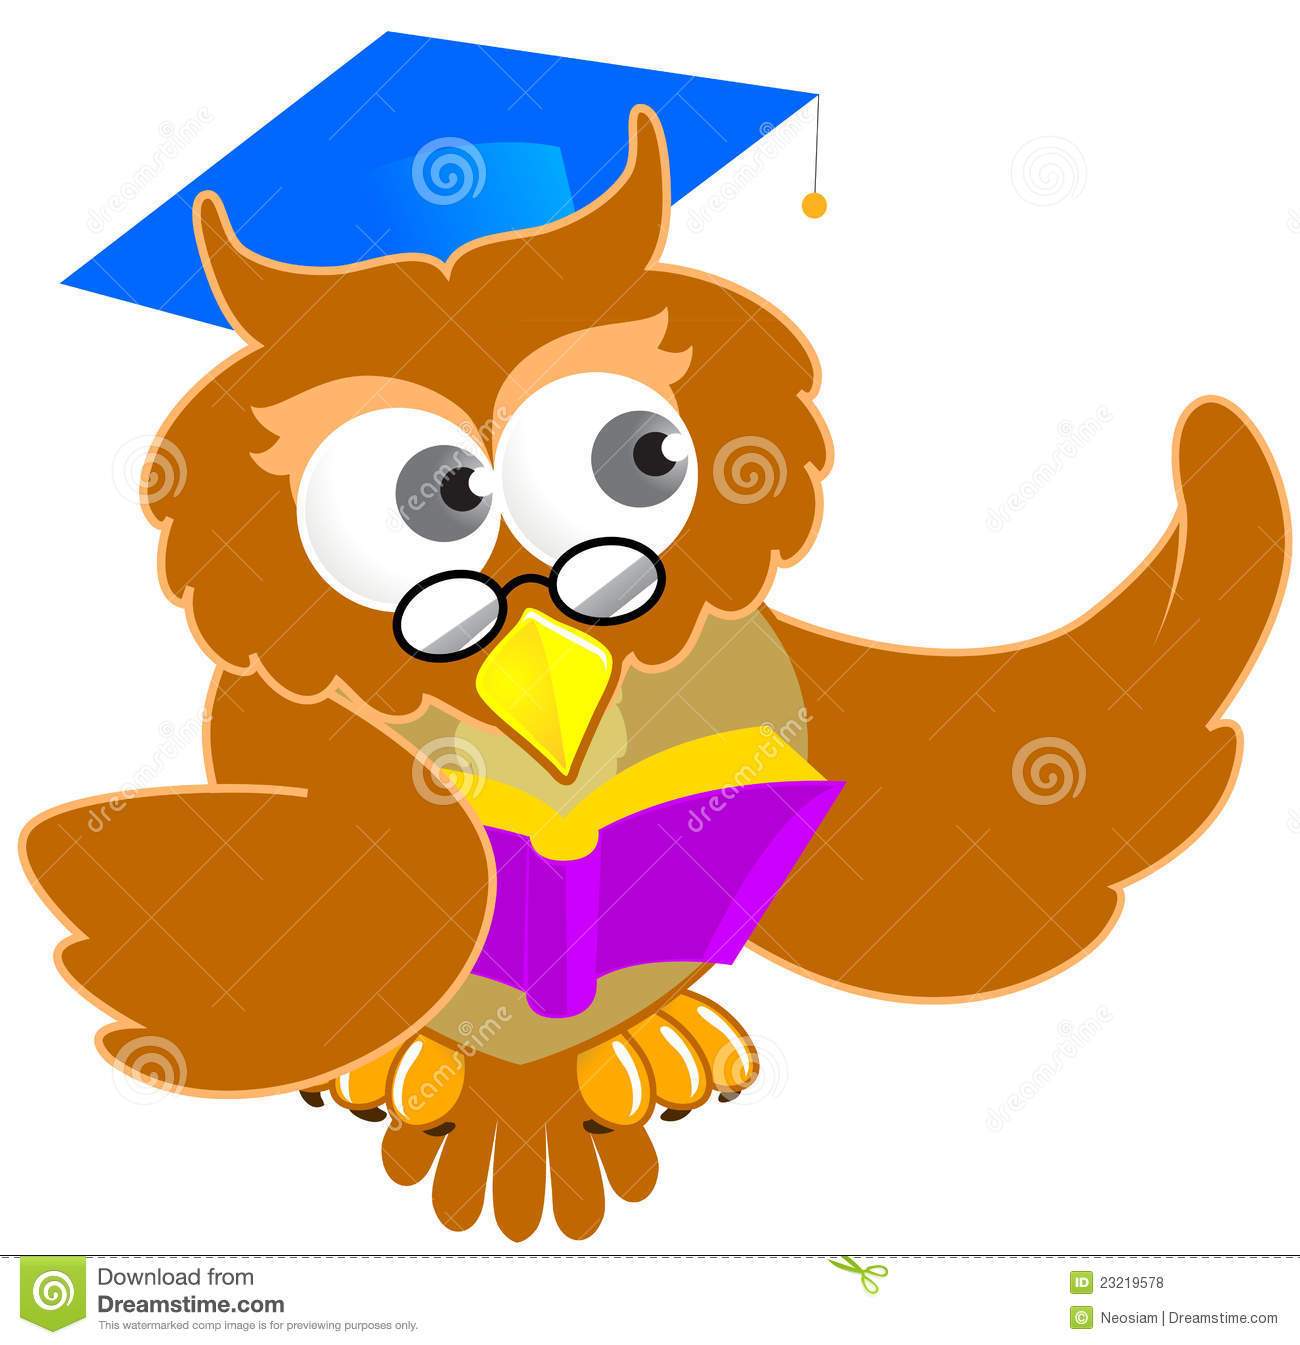 Smart Owl Clip Art Images & Pictures - Becuo